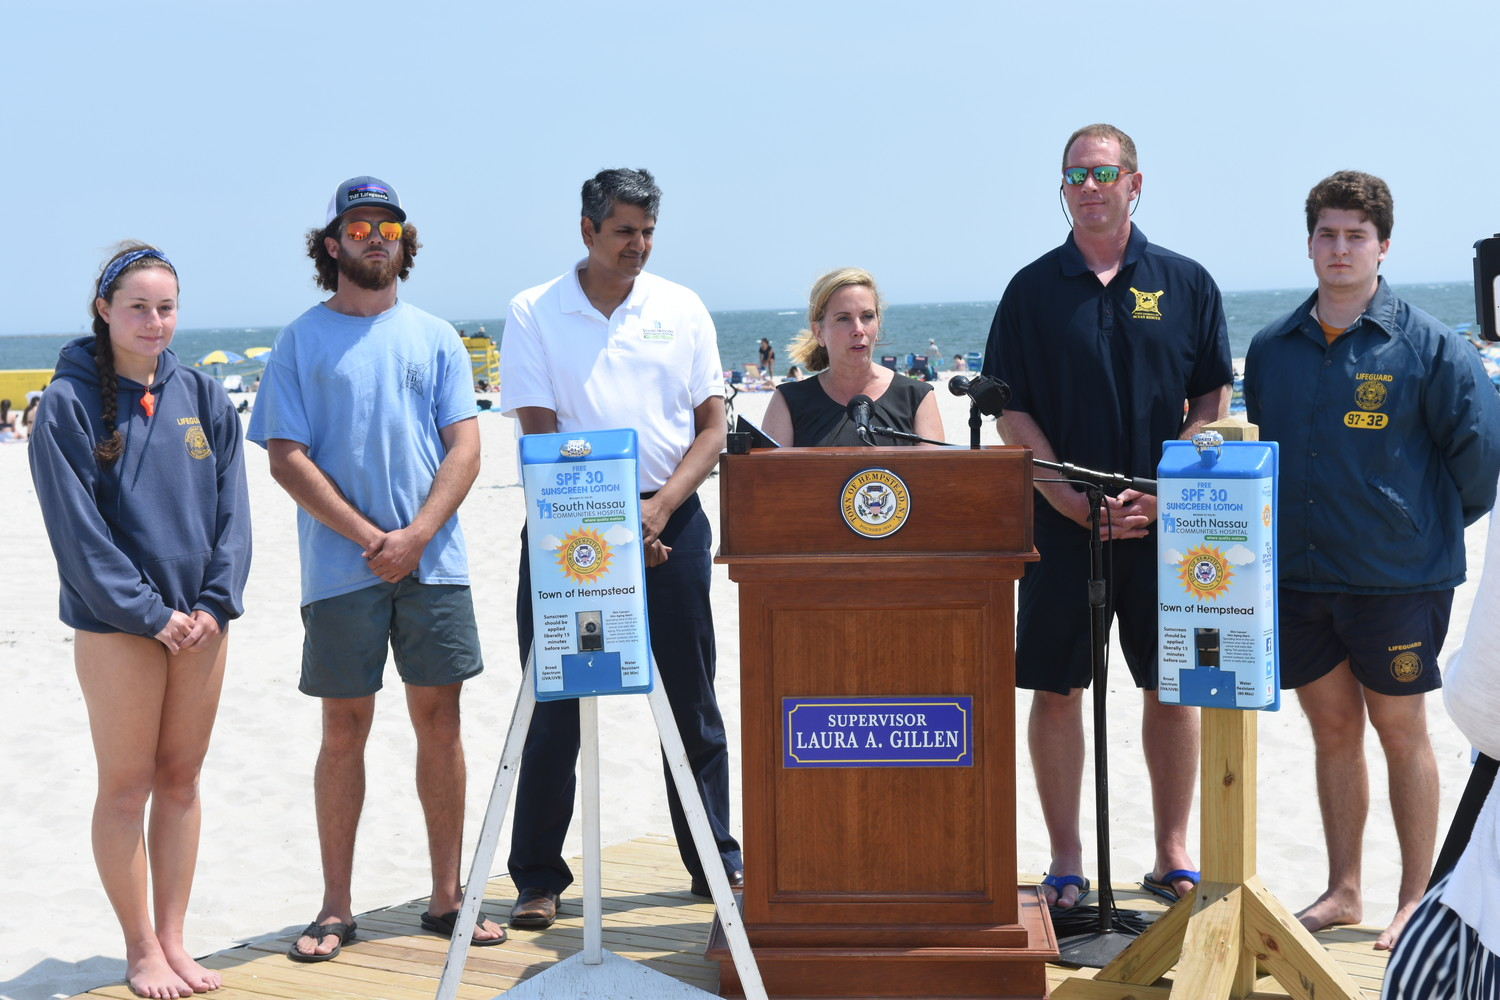 Town of Hempstead officials announced Monday that the town would expand a free sunscreen program at all town beaches, pools and other areas this summer.